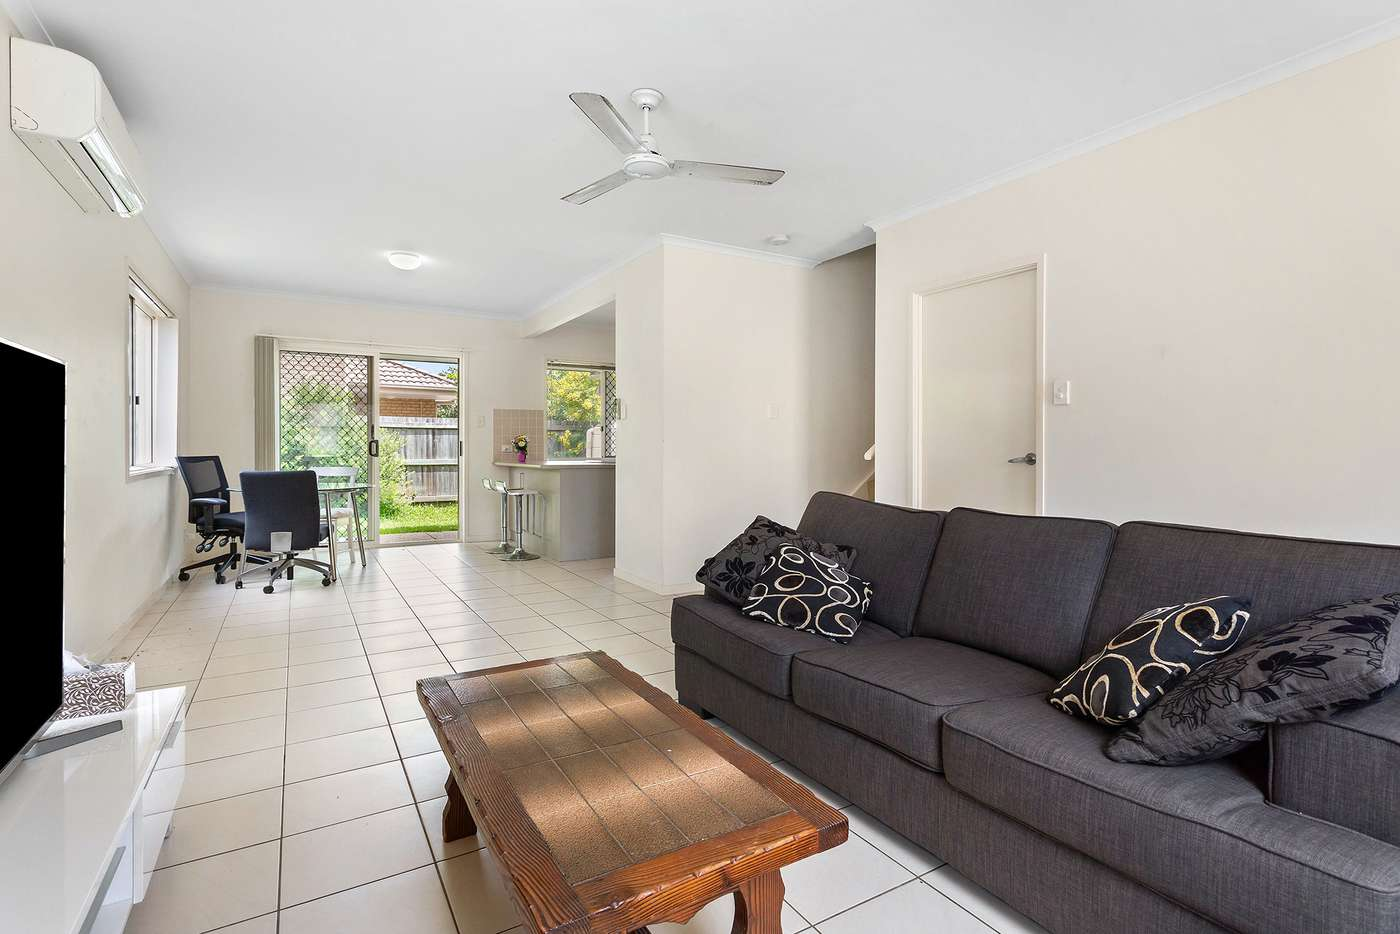 Fifth view of Homely townhouse listing, 19/1 Elsie Street, Kallangur QLD 4503